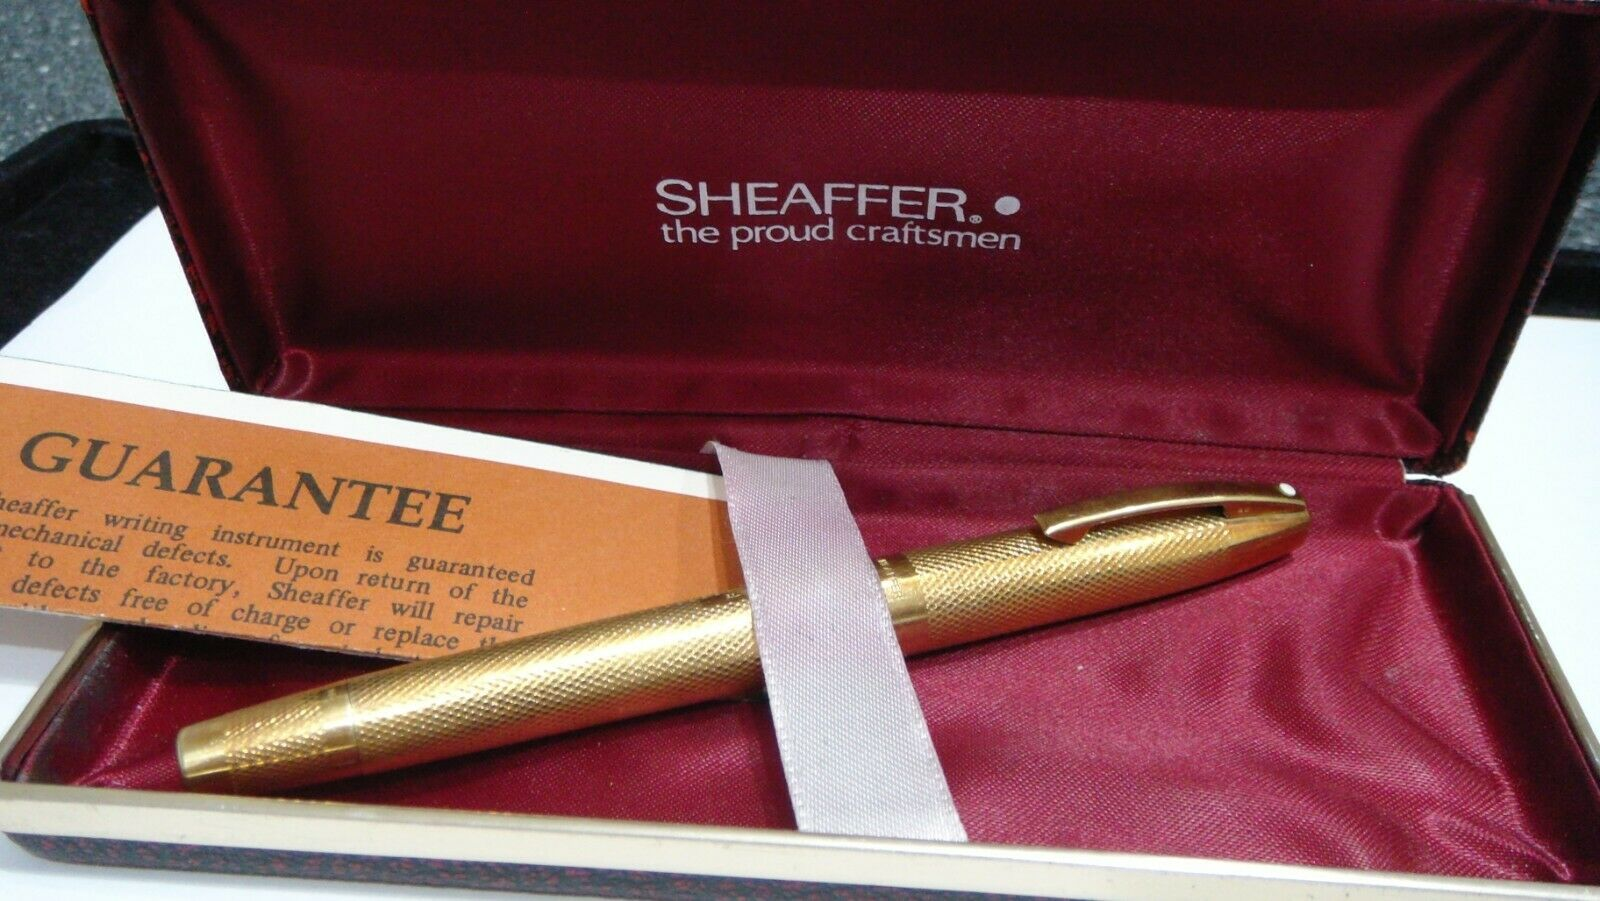 sell sheaffer pen collection